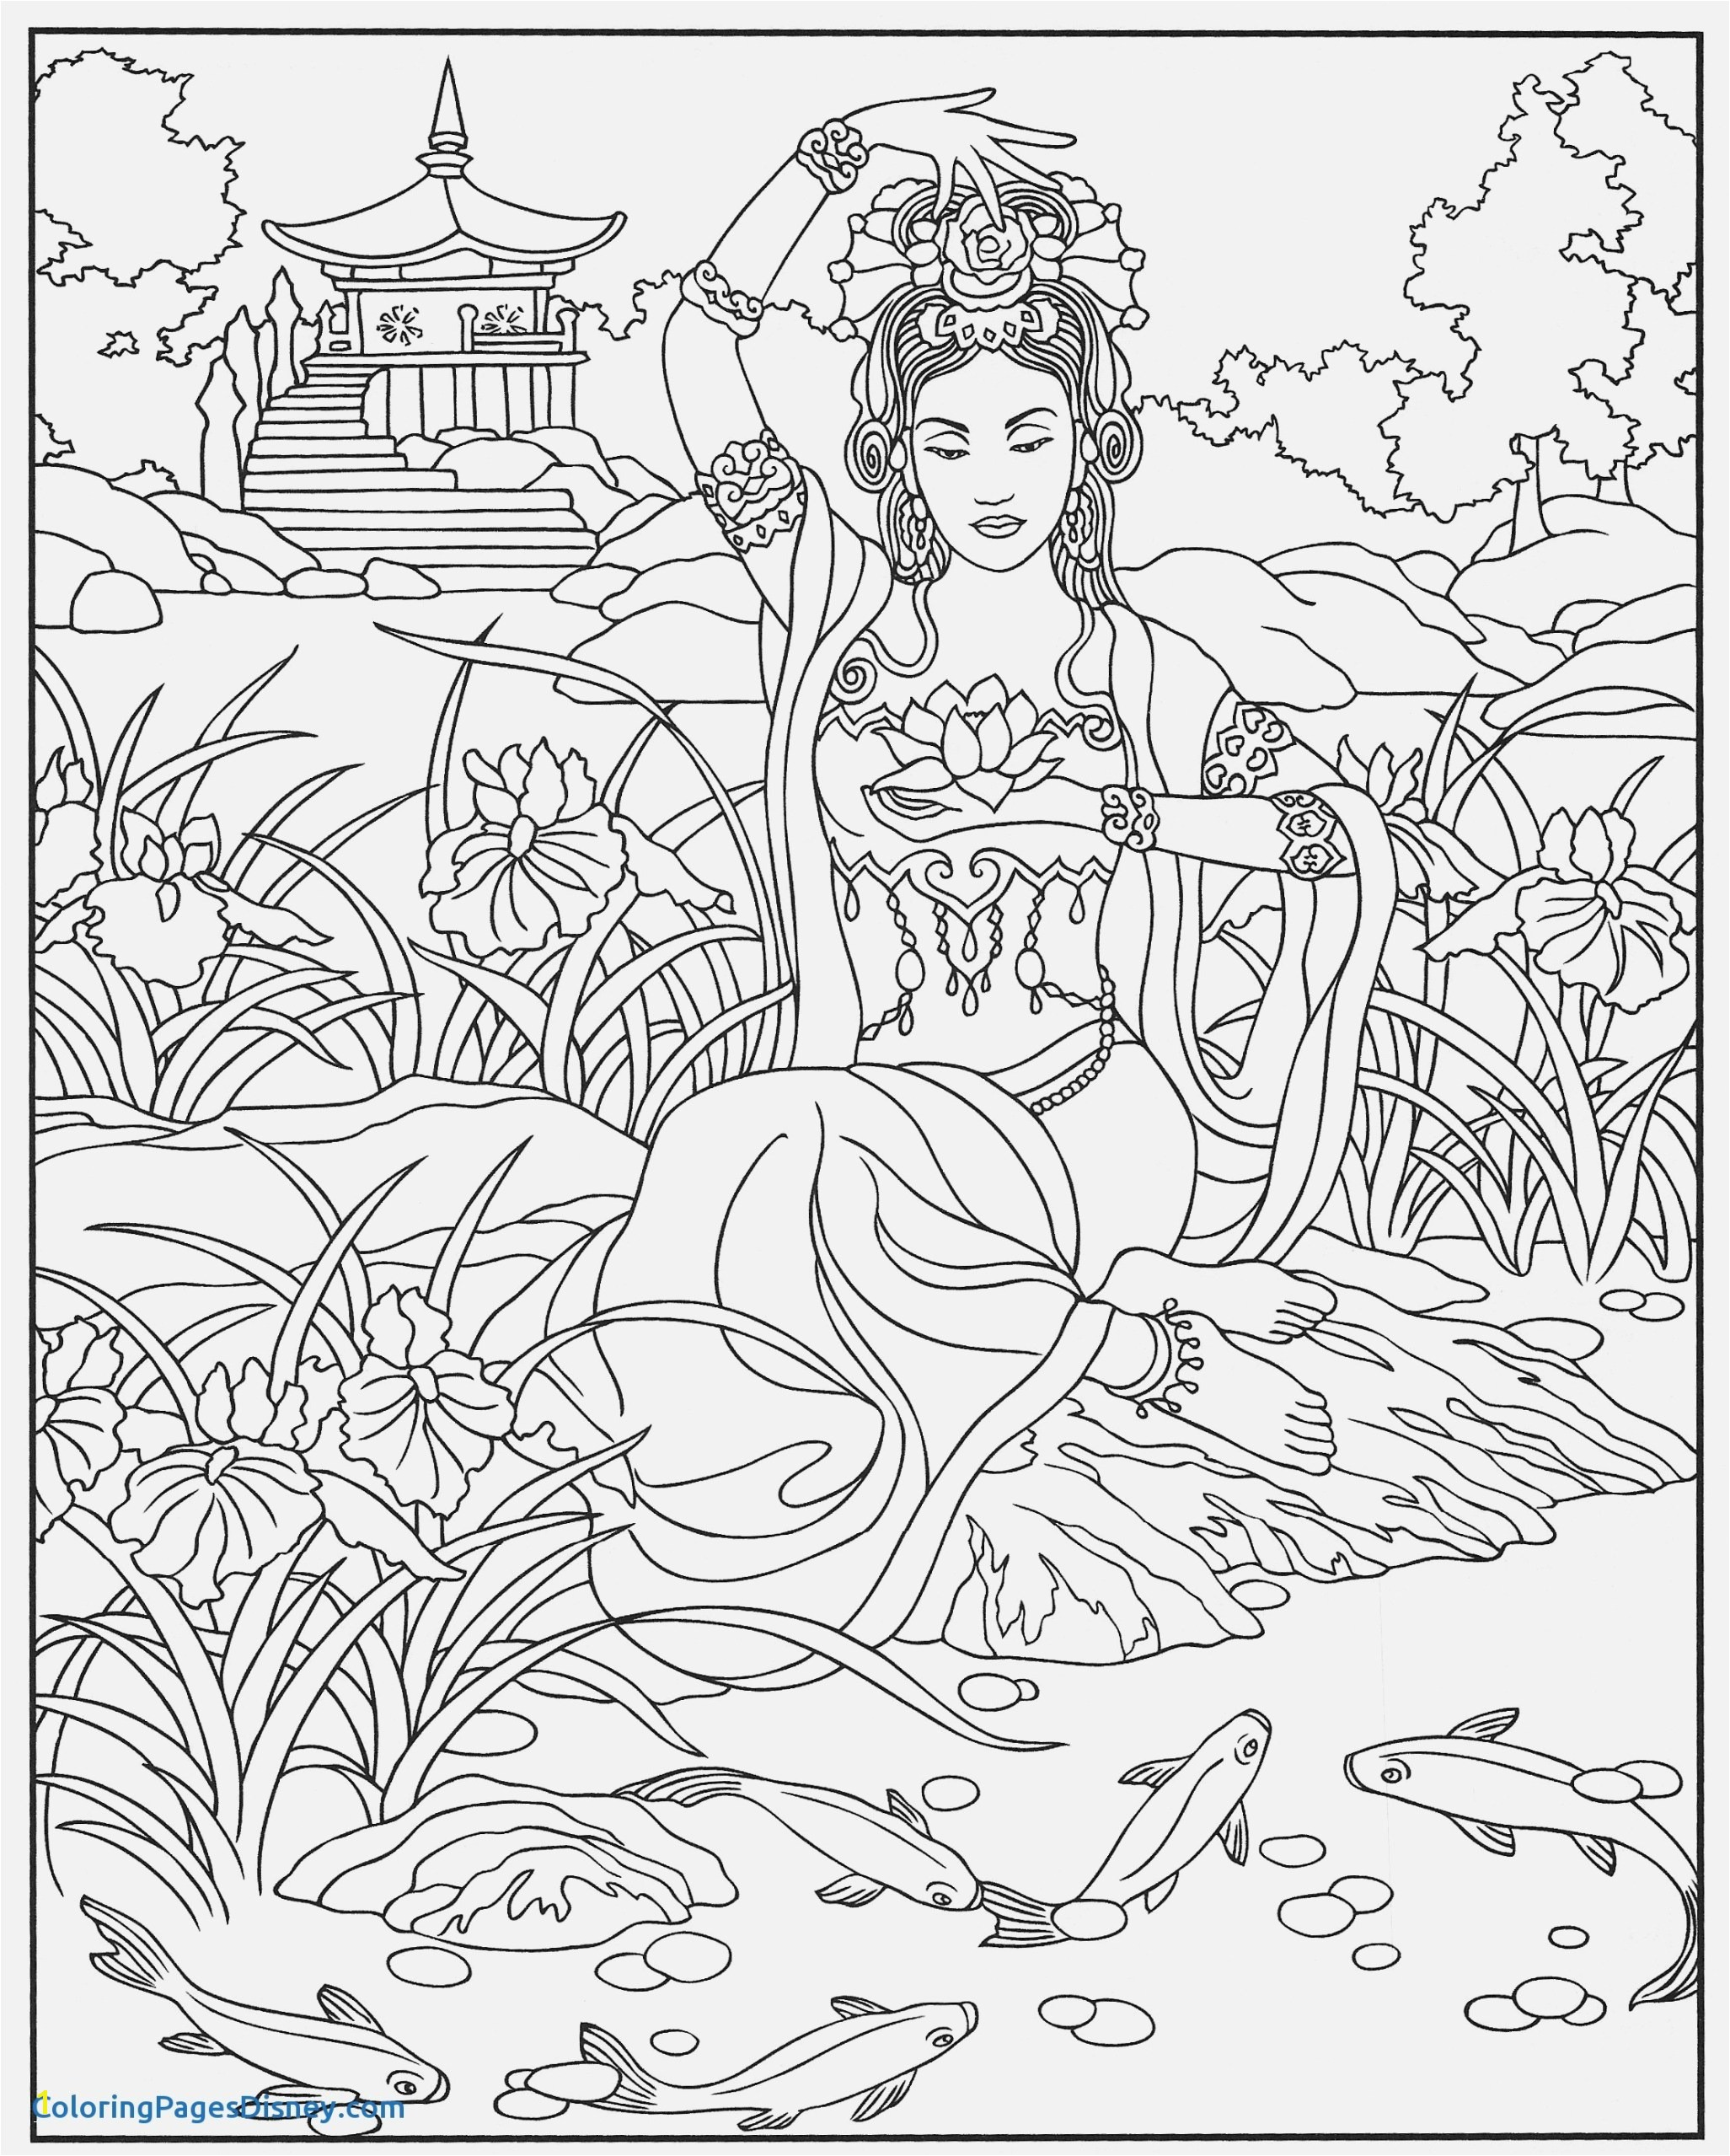 Church Coloring Pages Children S Church Coloring Pages Heathermarxgallery